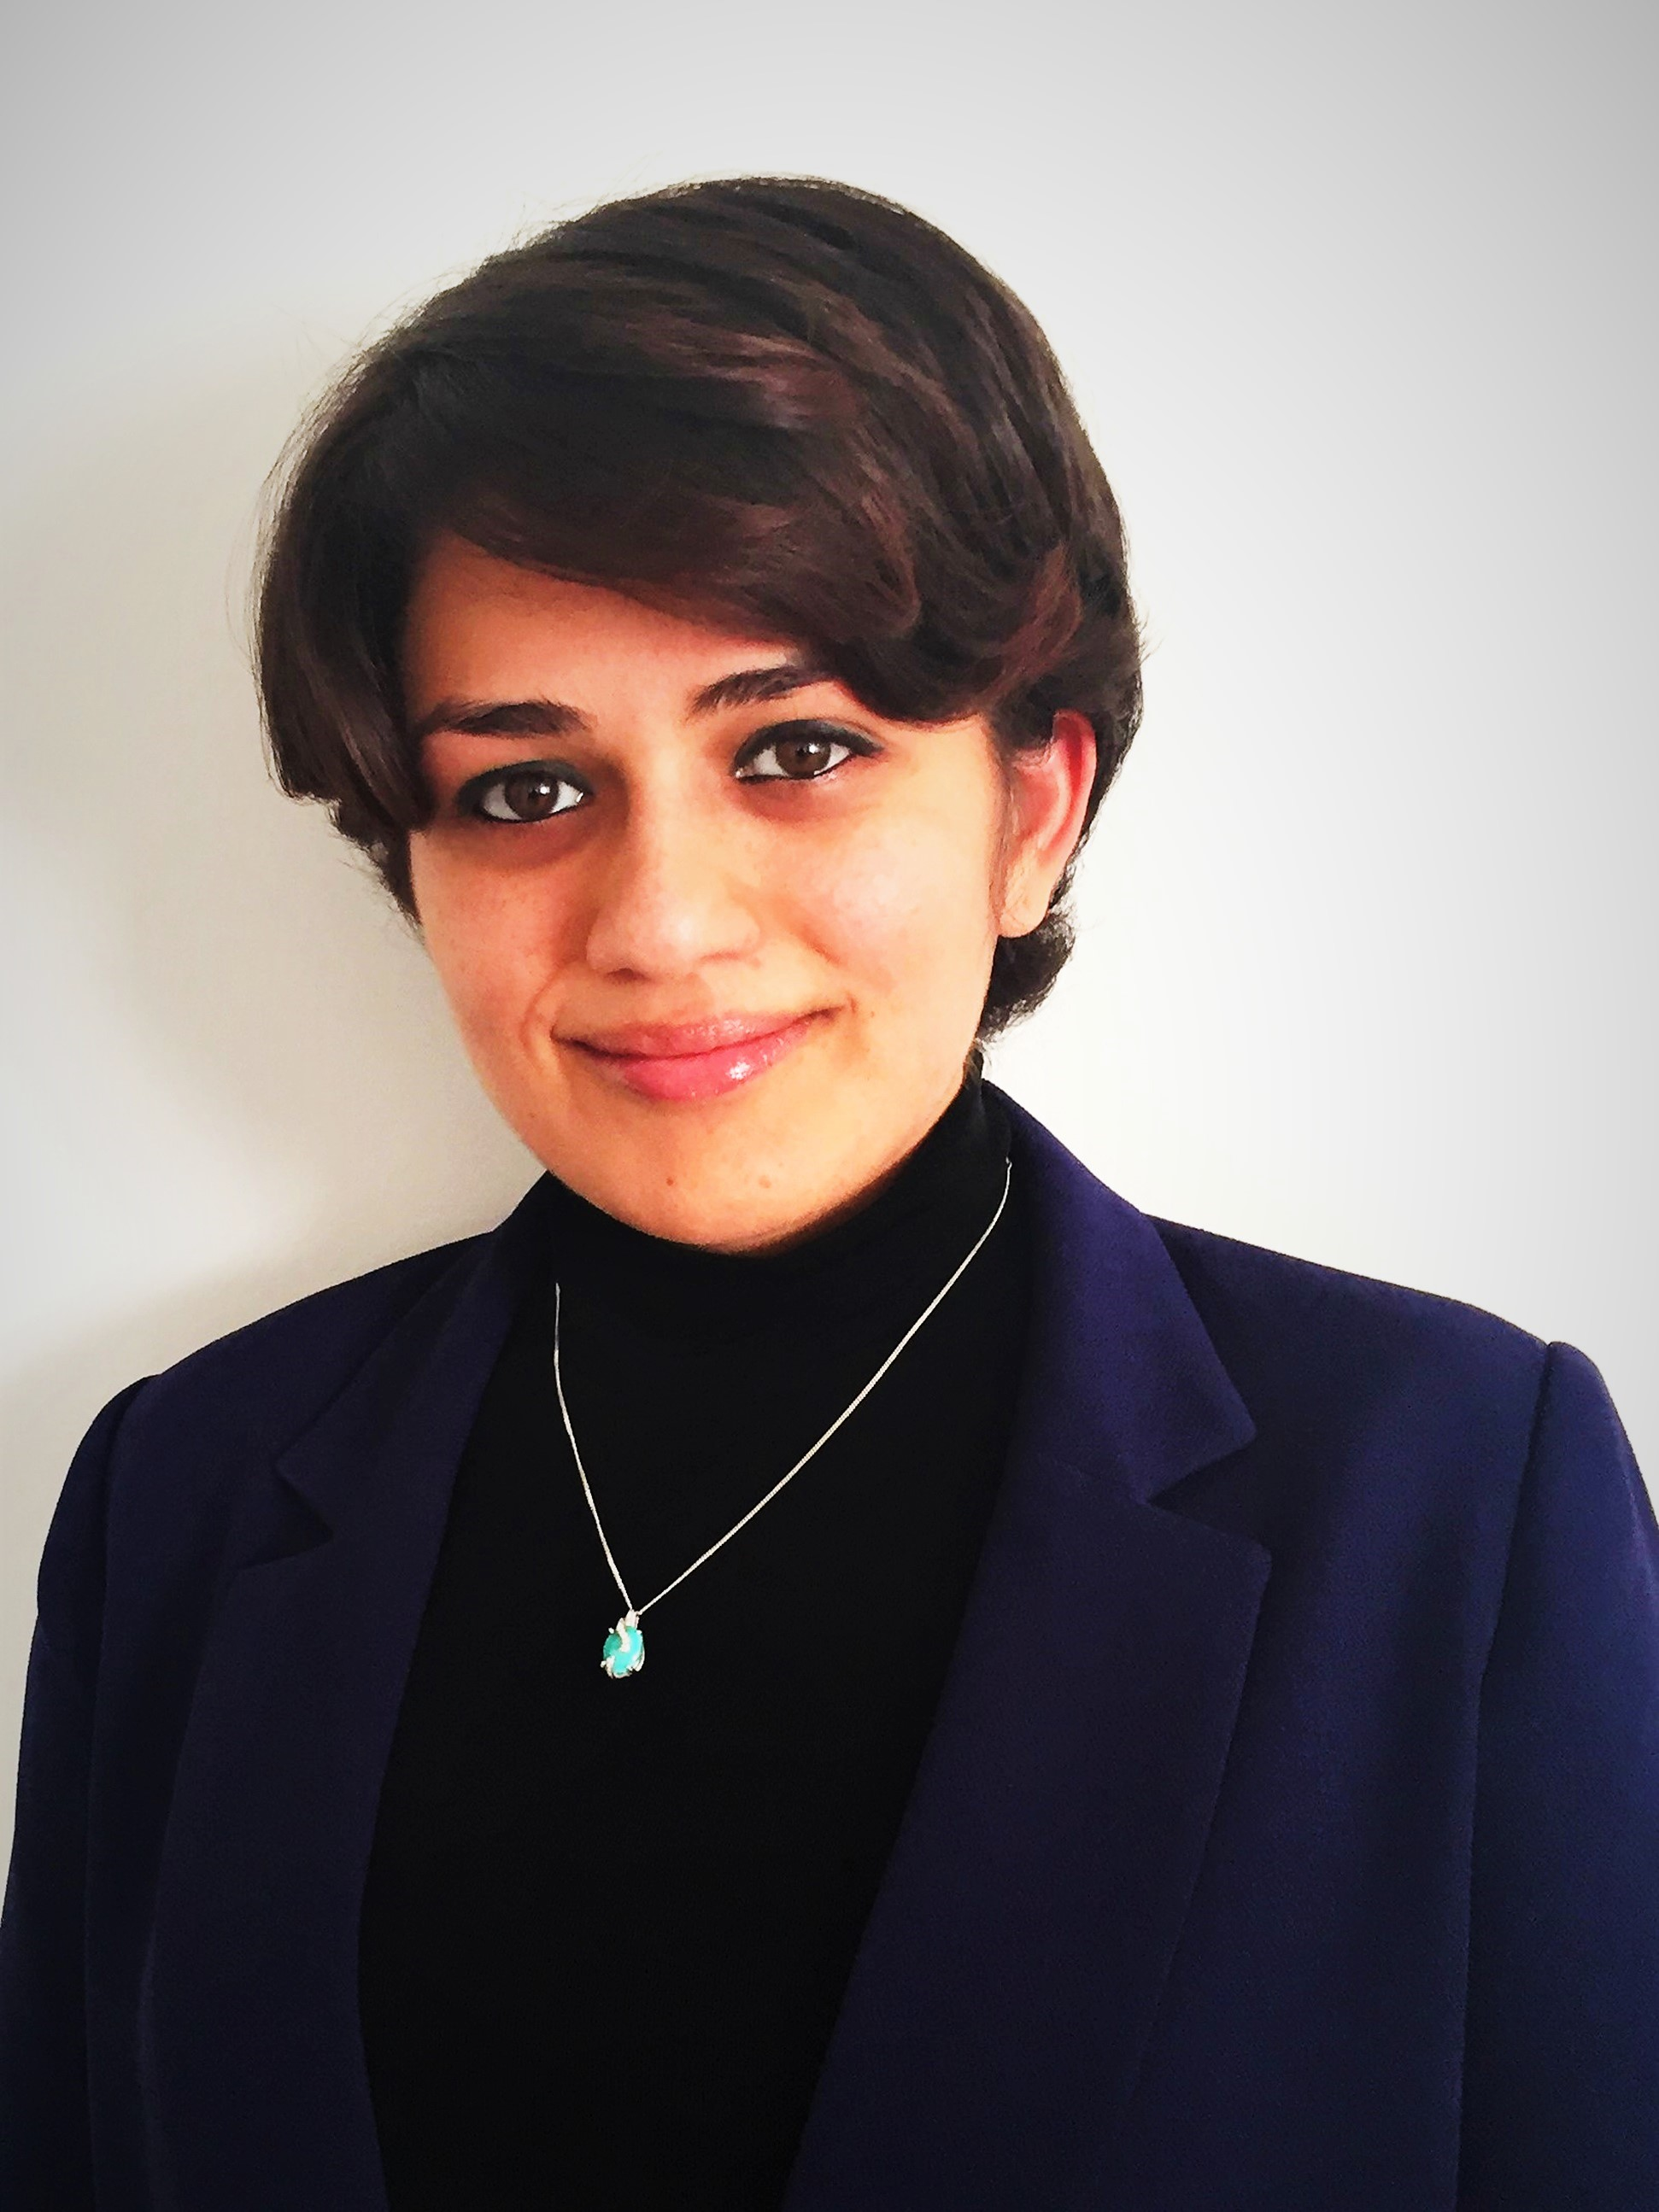 Hoda Vaziri, Postdoctoral Fellow,  Purdue University   Hoda Vaziri is the quantitative postdoctoral fellow for the Humanities and Human Flourishing Project and is based at the Department of Psychological Science at Purdue University. She received her Ph.D. in Management from the University of Texas at Arlington (2017), her M.Sc. in Human Resource Management from the University of Texas at Arlington (2011), and her B.Sc. in Computer Engineering from Sharif University of Technology in Iran (2009). Her research interests center around work-life interface, employee leisure activities, and individual's multiple identities.